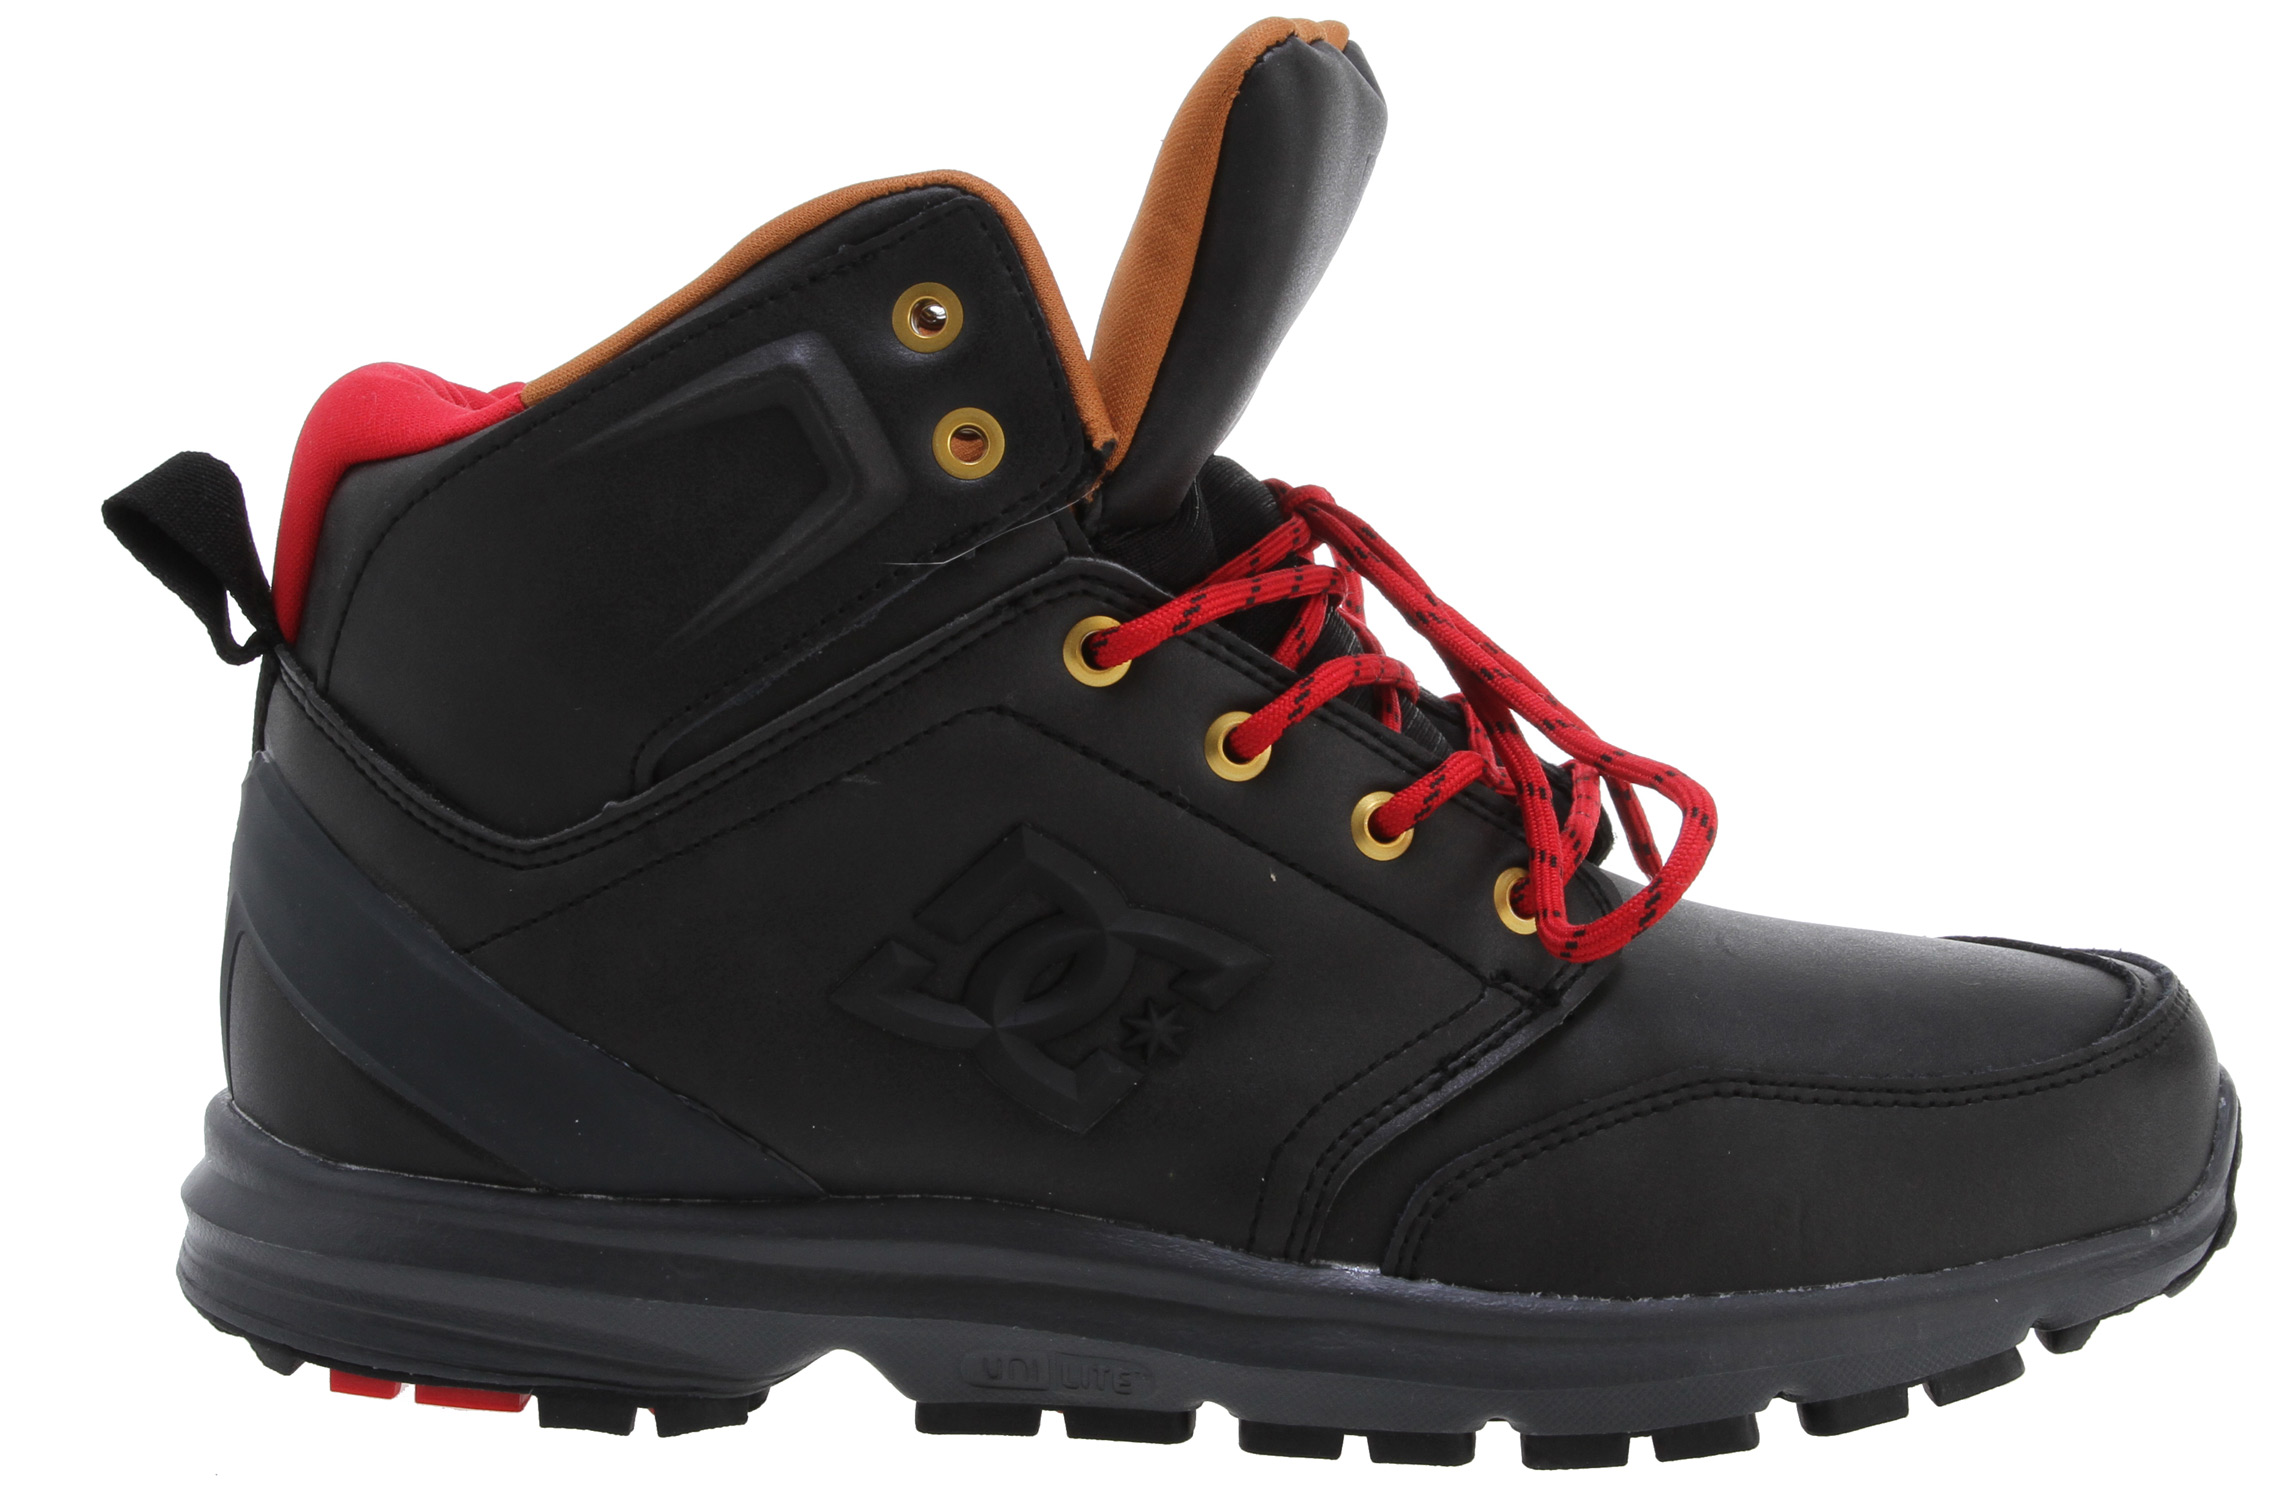 Skateboard The Ranger SE drops in two colorways for holiday 2012, black/true red and black/pirate black. The Ranger SE is a lightweight high-top boot that features a sole constructed using DC's revolutionary UNILITE technology. UNILITE provides long-lasting cushioning and impact protection. The Ranger also features a thermoplastic rubber heel counter, padded area for the Achilles, and a heel pull loop. Key Features of the DC Ranger SE Boots: Lightweight High Top Boot DC's Revolutionary UNILITE Technology Provides Long-Lasting Cushioning & Impact Protection Molded Leather Or Nubuck Upper TPR Heel Counter Metal Eyelets Padded Area For Achilles Tendon Heel Pull Loop Leather Tongue Molded Logo Details + Rugged All-Terrain Rubber Outsole. - $62.95